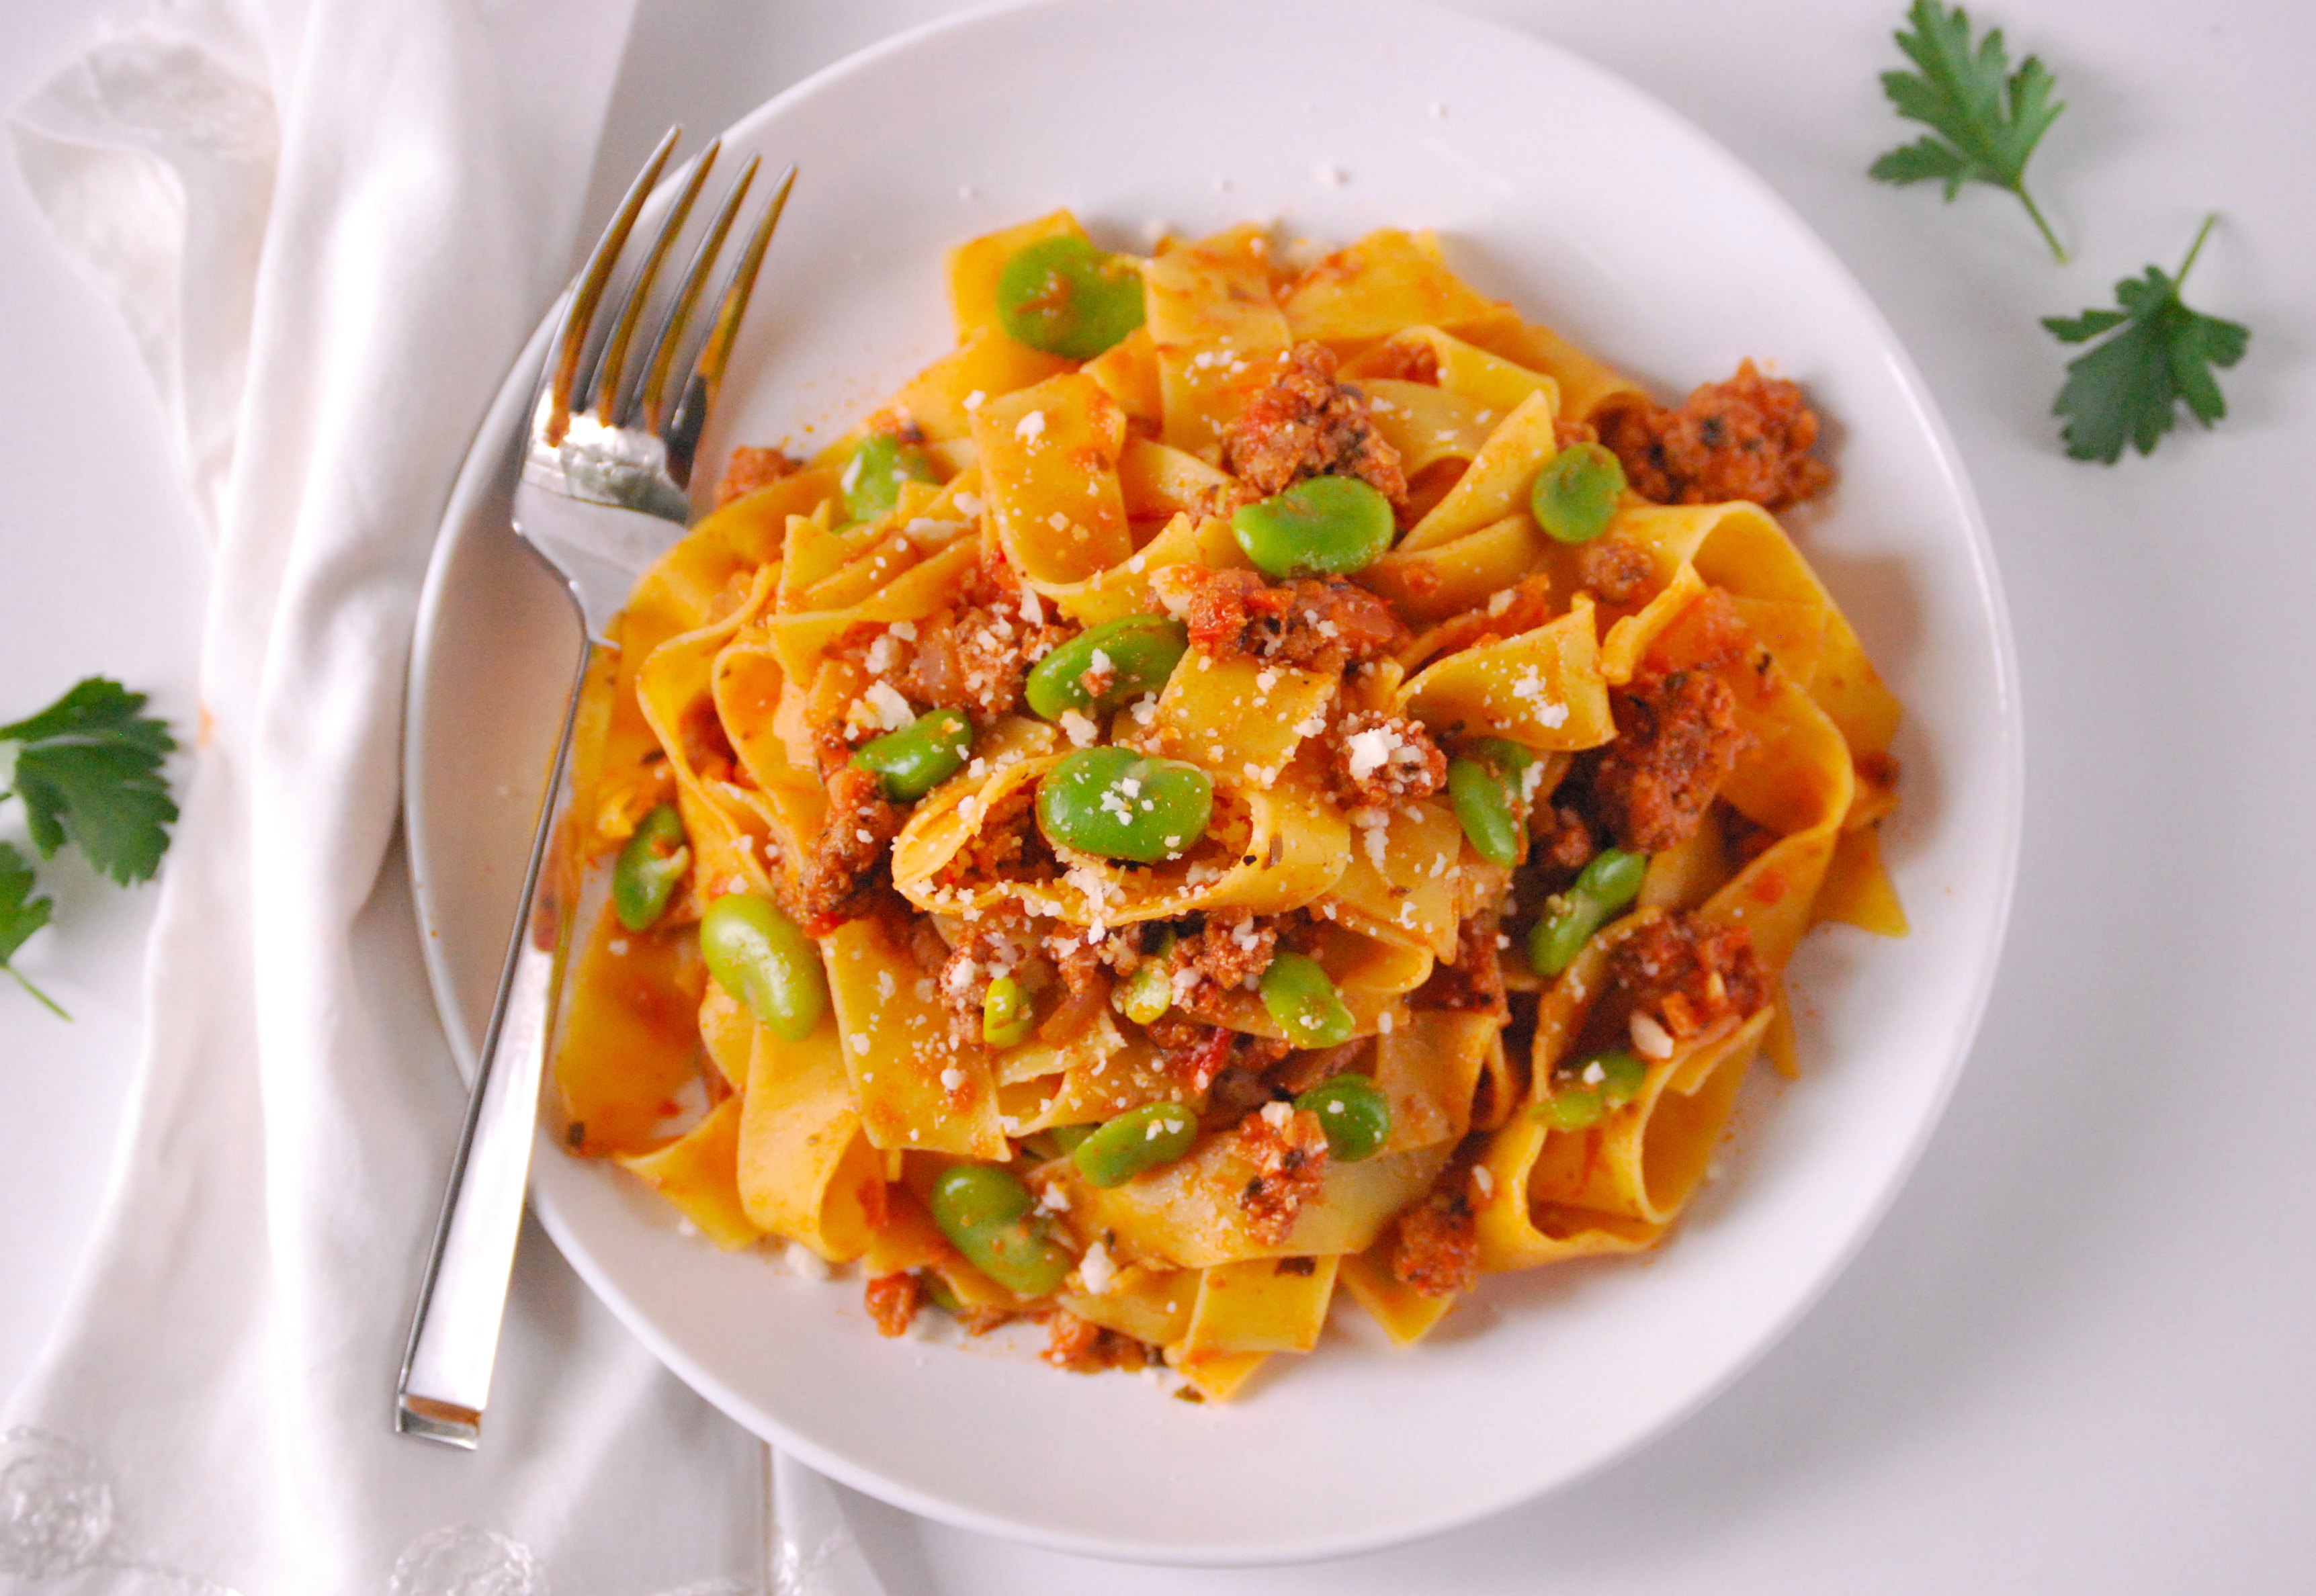 recipe hope you give this pasta with fava beans a whirl